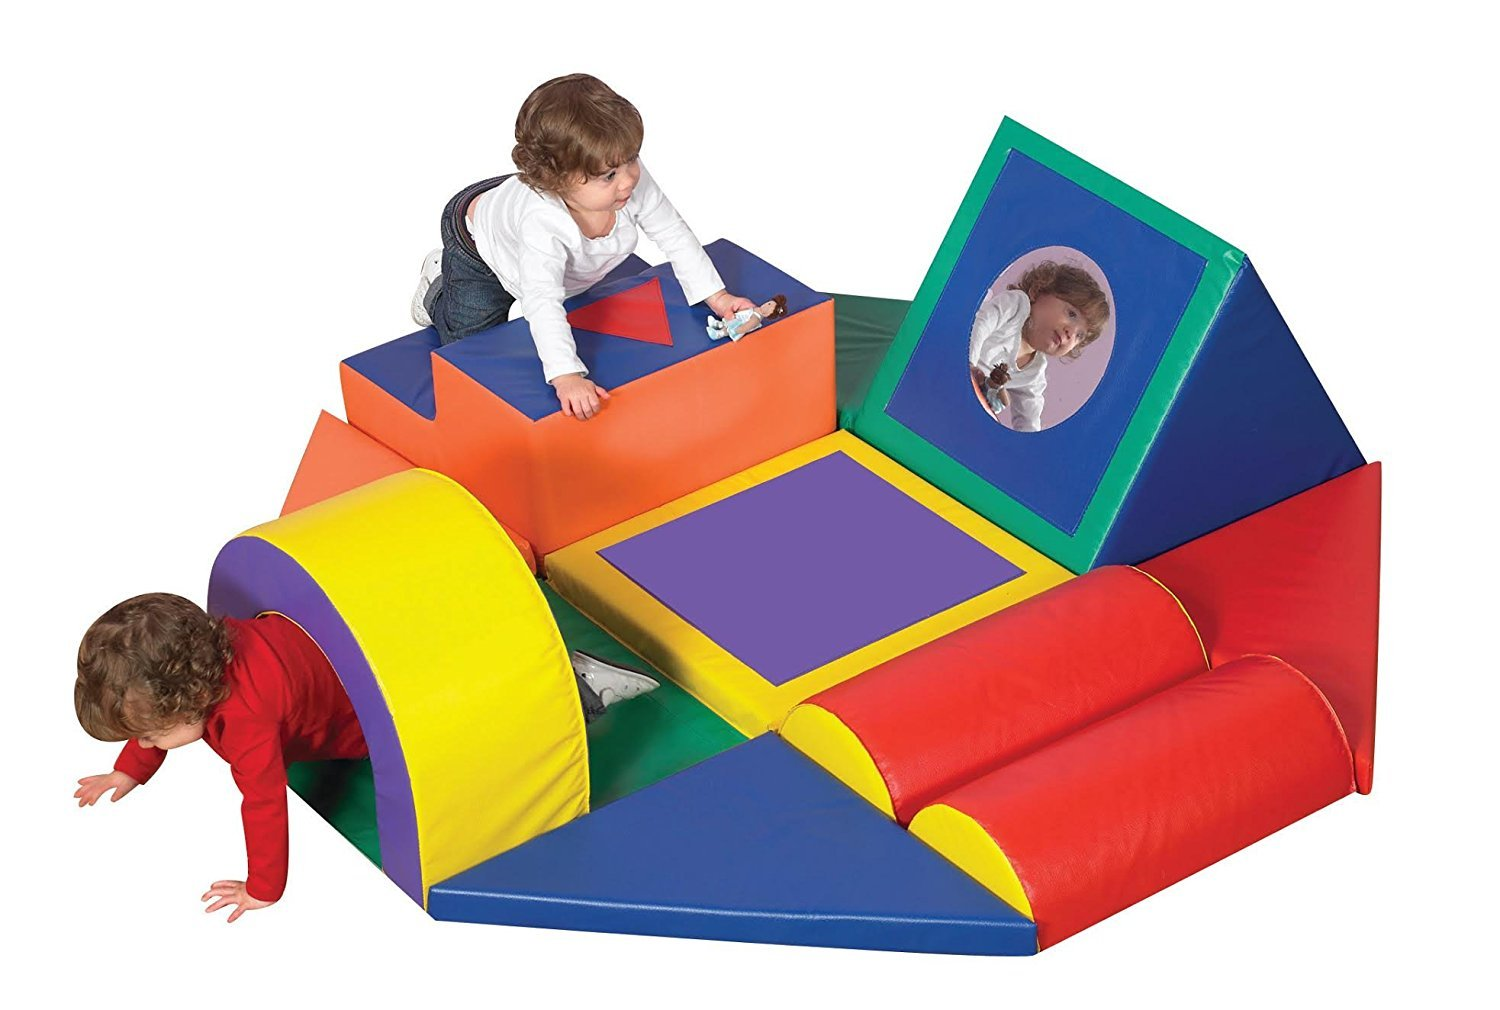 11-Pc Shape and Play Obstacle Course